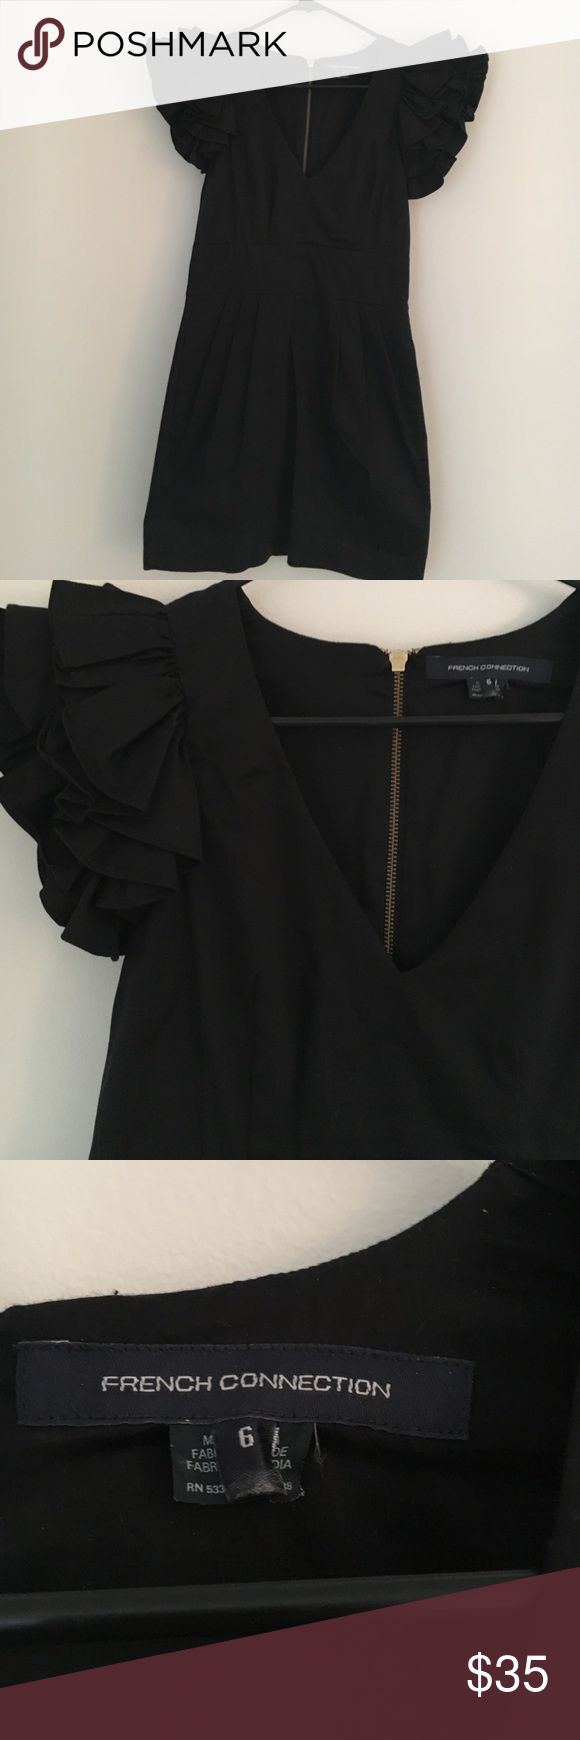 French Connection Black Ruffled Sleeve Dress Adorable little black dress. Great for a bachelorette party. Very light and comfortable. Fitted and flattering. French Connection Dresses Mini